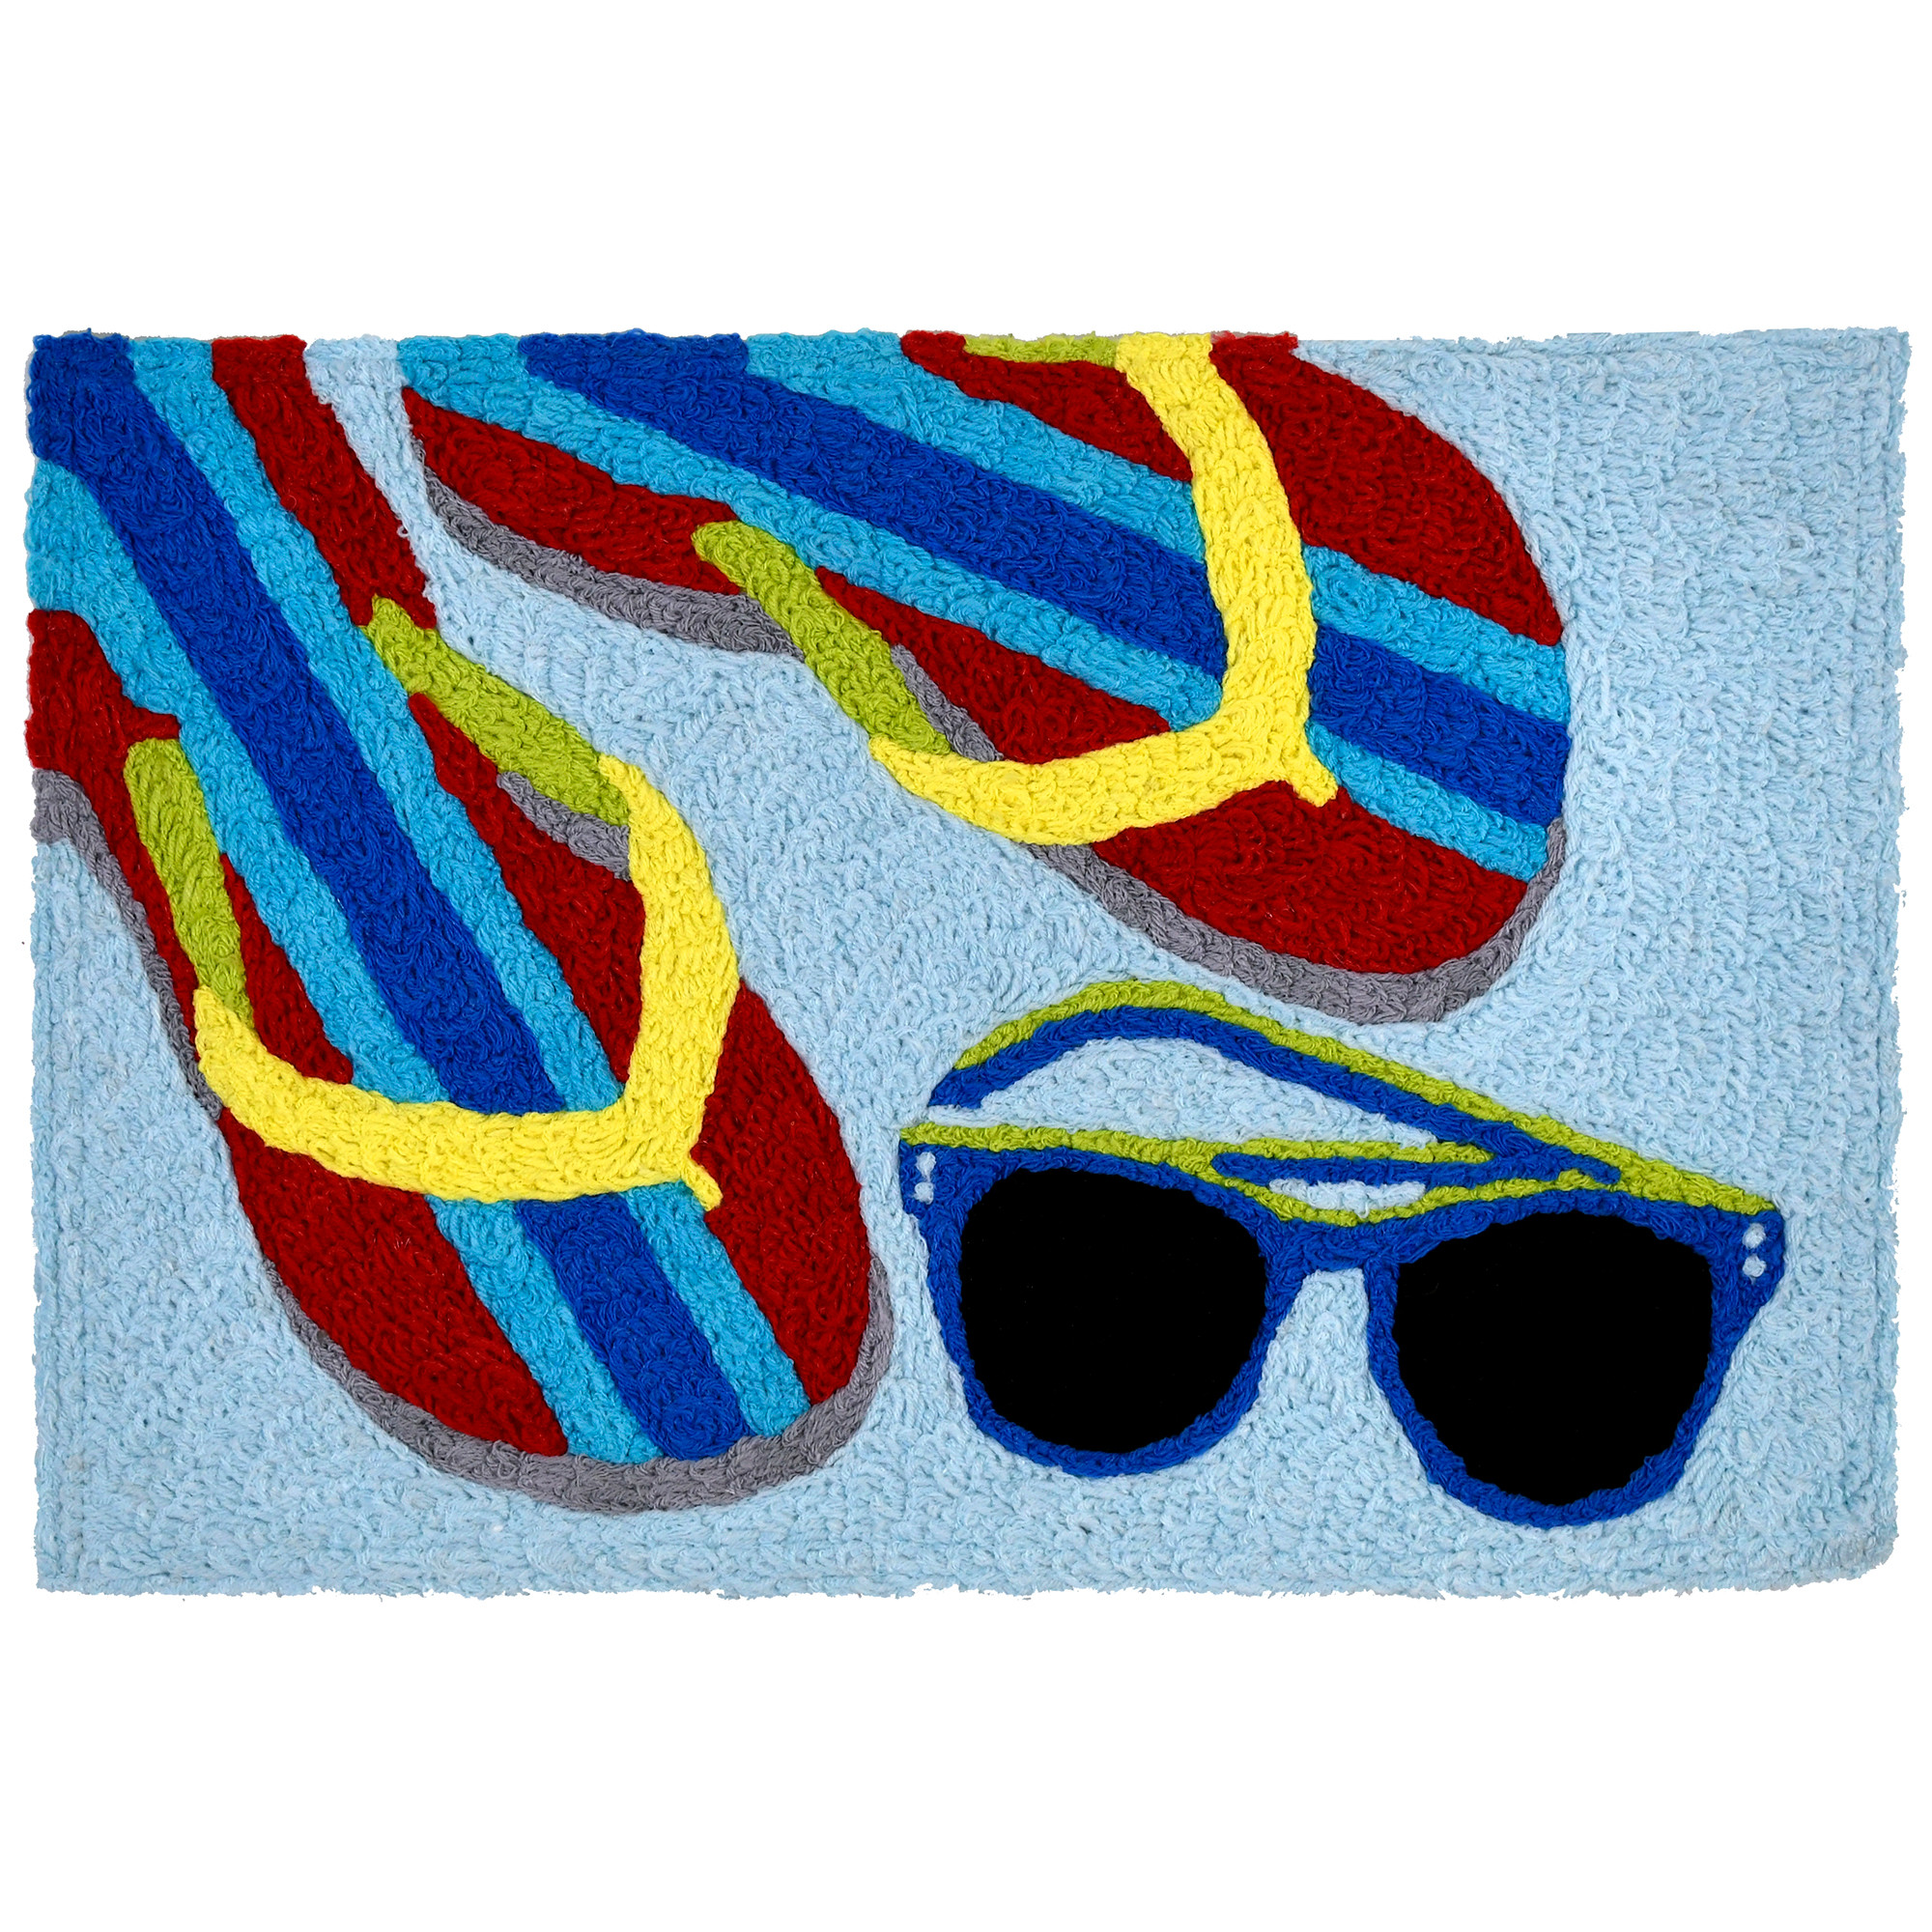 Sunglasses and flip flops are the perfect accessories for the beach and this Jellybean® accent rug. The bright primary colored hues on a machine washable rug make this polyester piece a welcomed addition to your indoor and outdoor spaces alike.